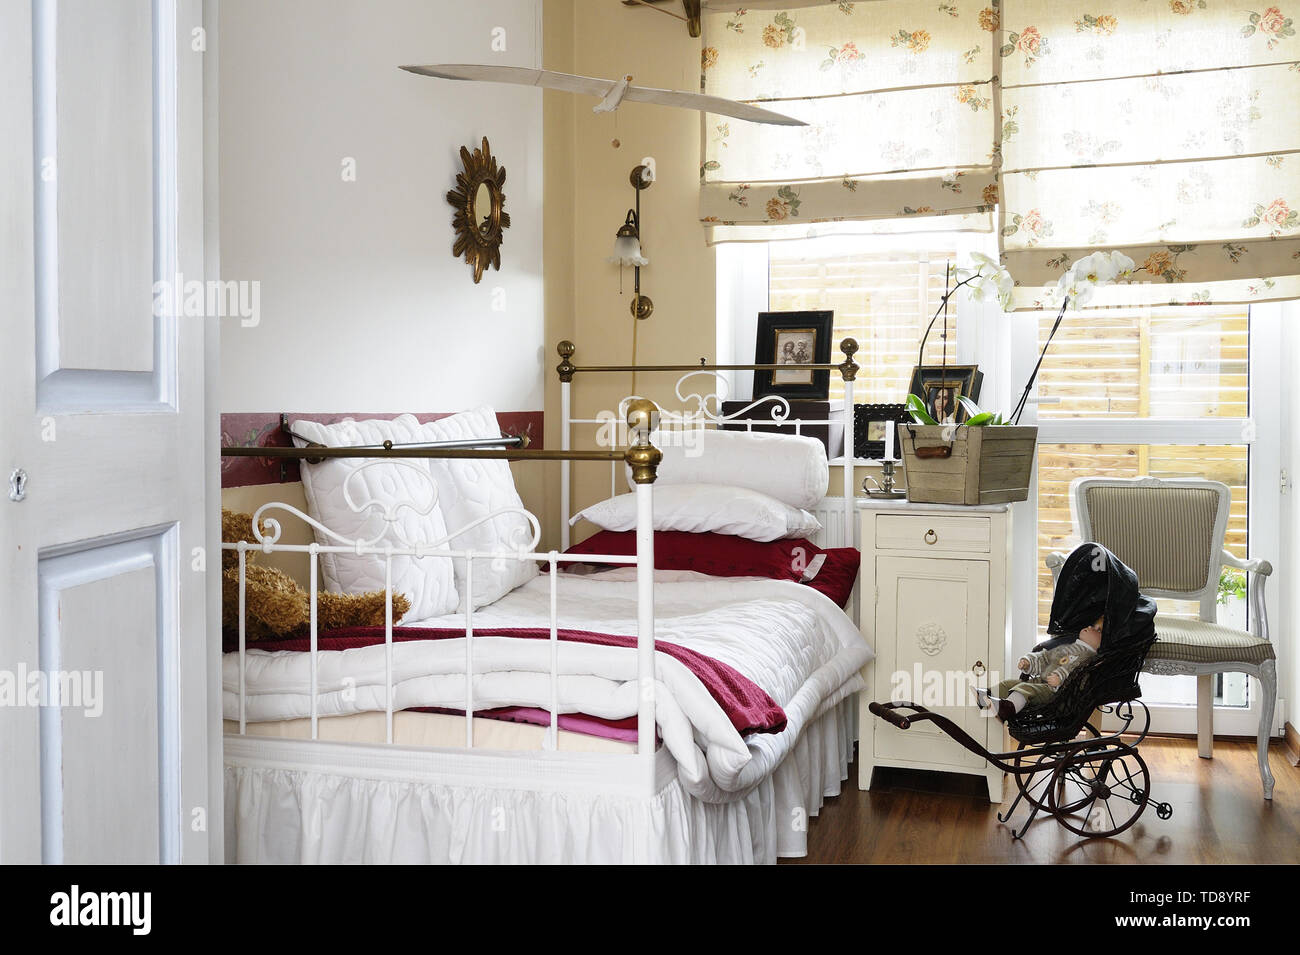 Black doll stroller next to rustic metal bed in teen girl bedroom   UK & IRISH USE ONLY - Stock Image